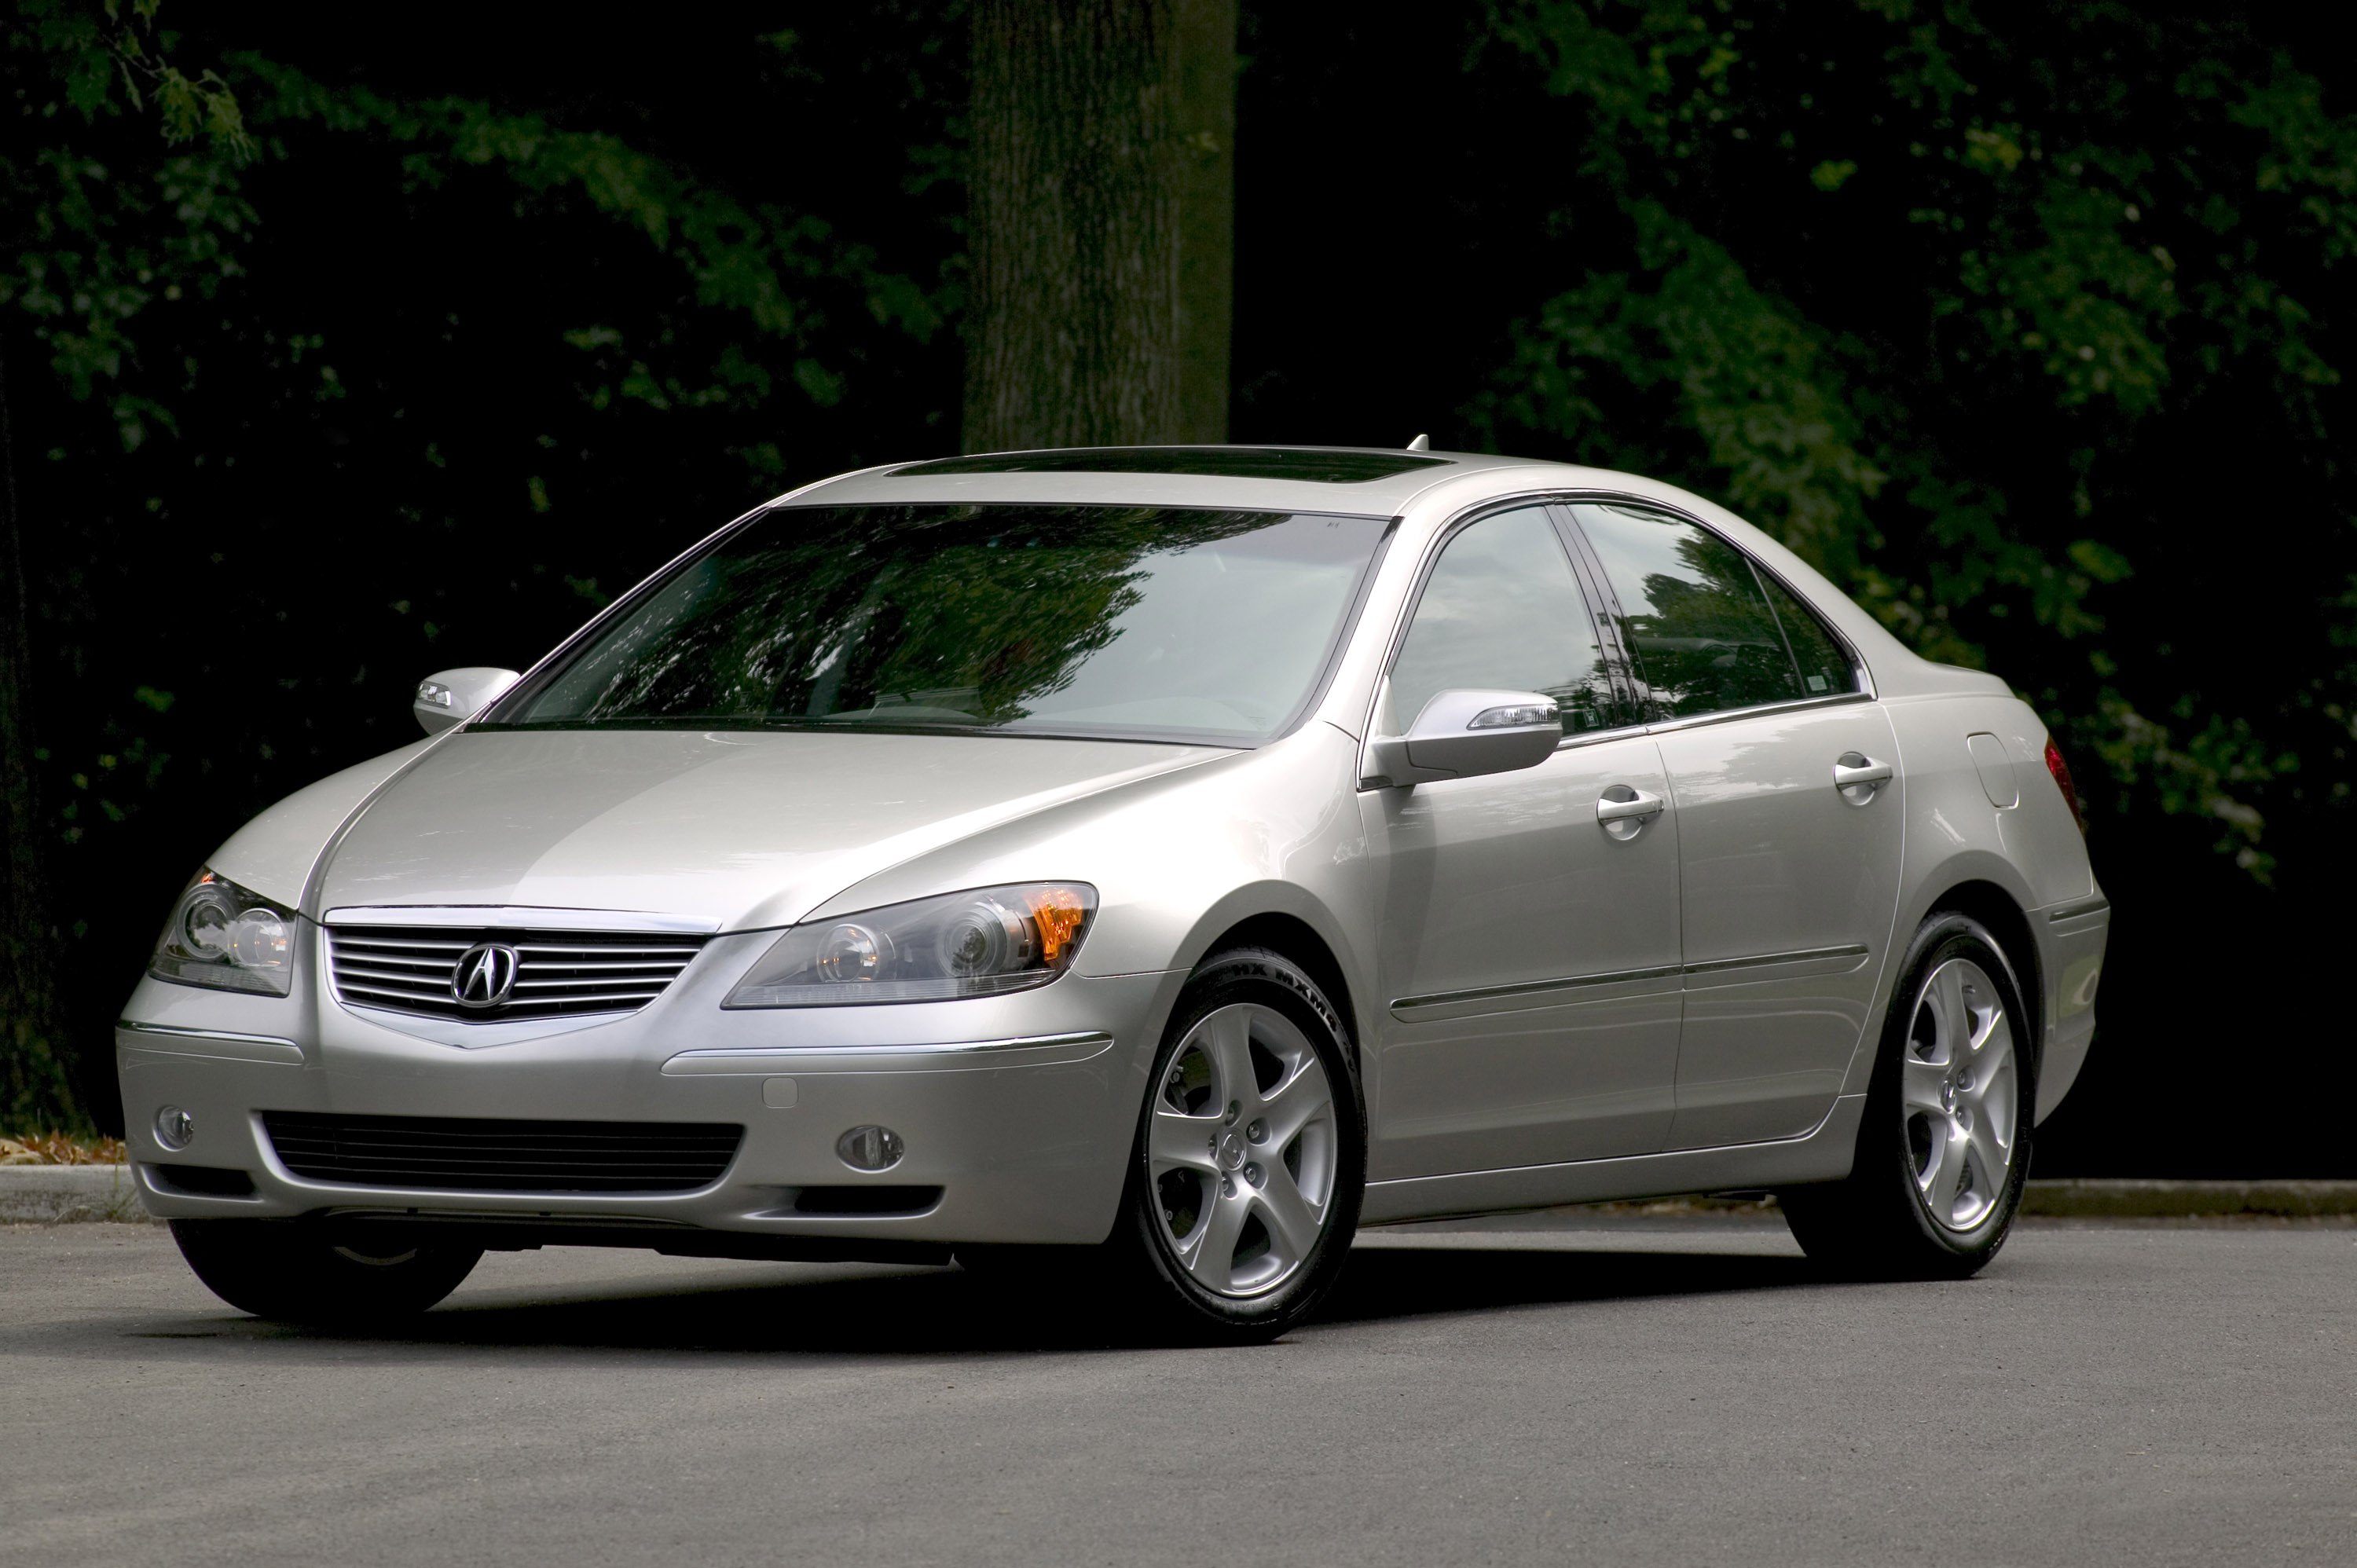 Would You Buy An Acura RL Over A TL?